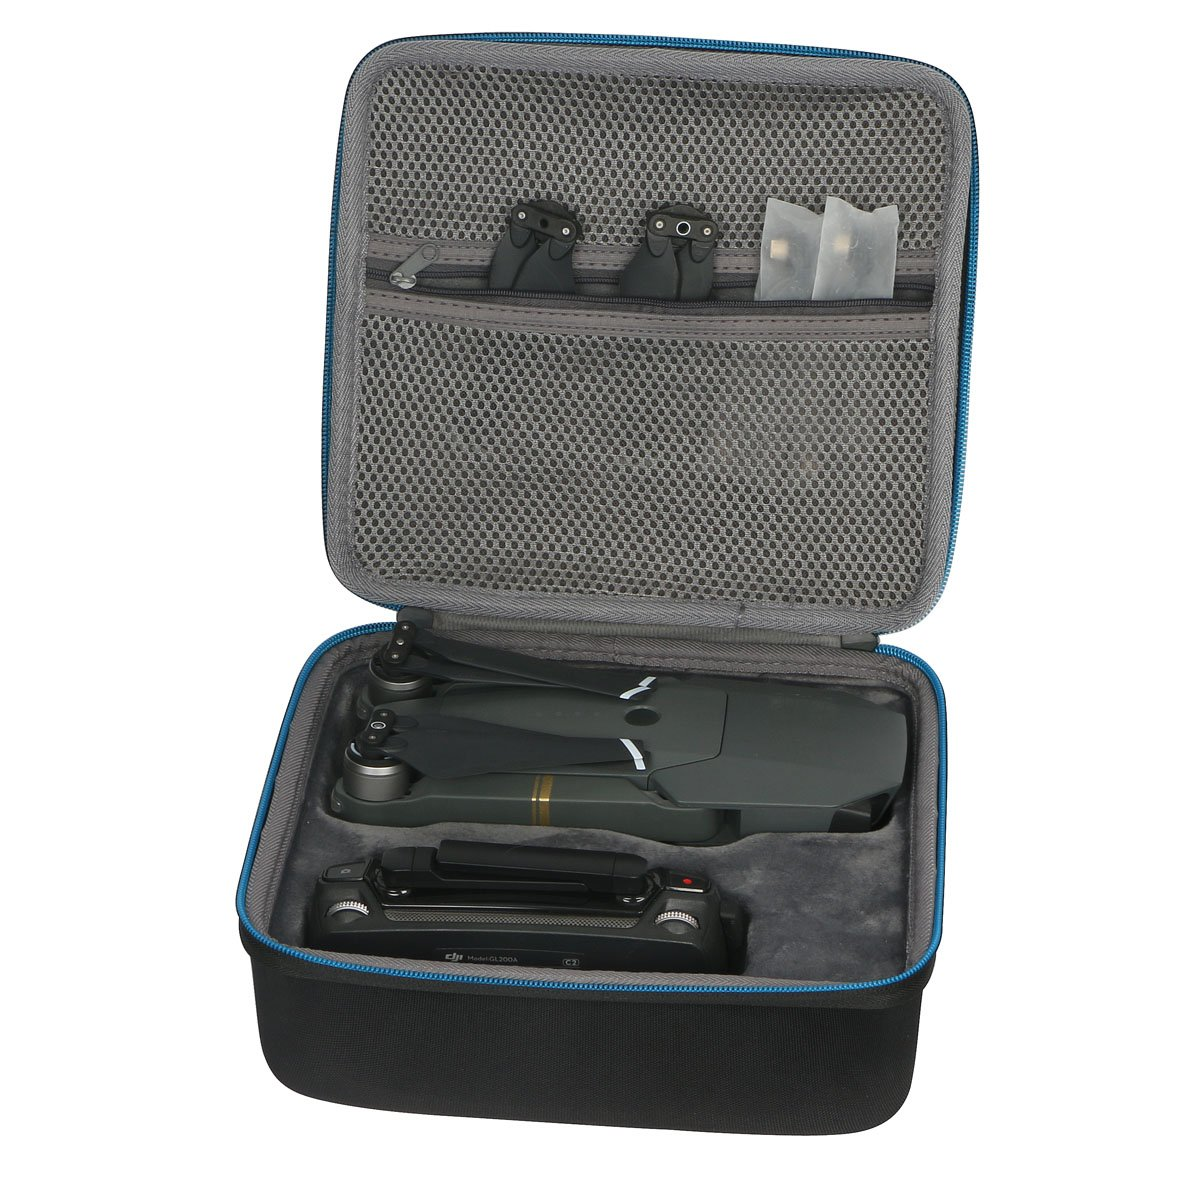 For DJI Mavic Pro Drone, Propellers / Controller Travel Hard Case Portable Bag By Baval